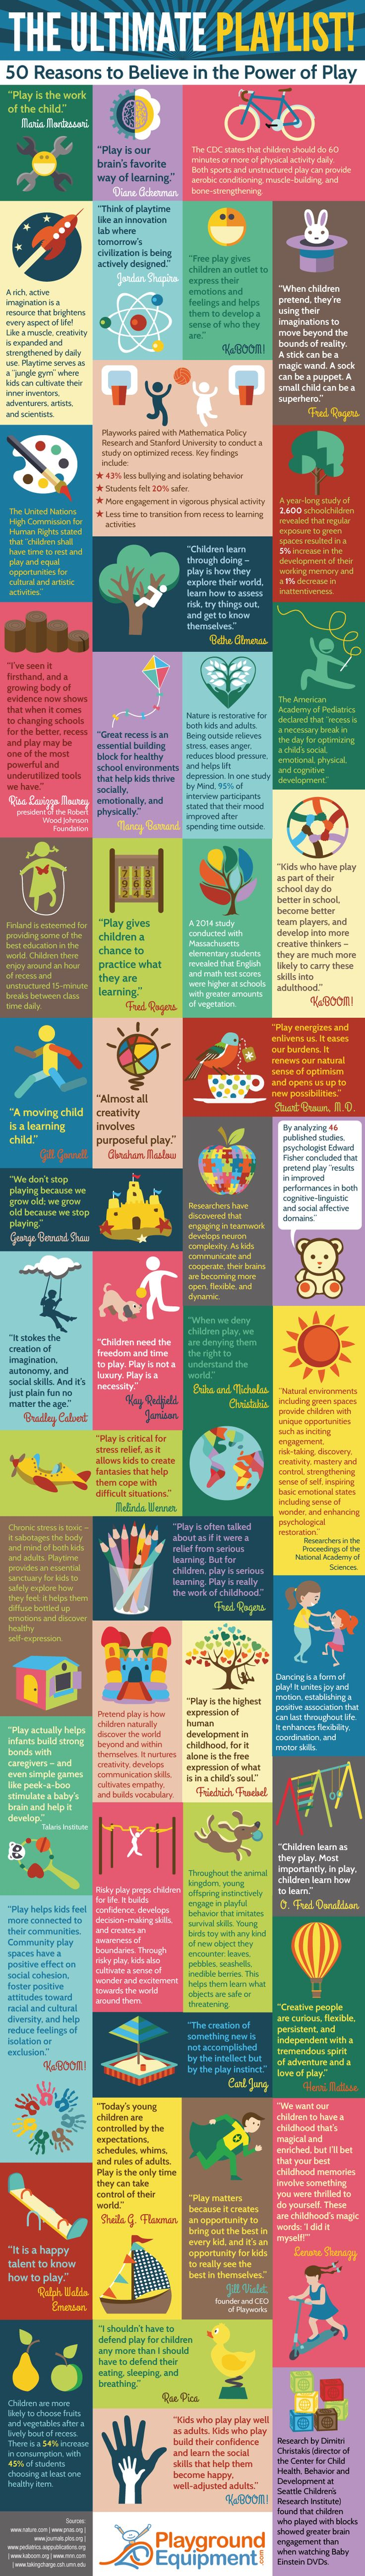 50 Reasons to Believe in the Power of Play Infographic - http://elearninginfographics.com/50-reasons-believe-power-play-infographic/